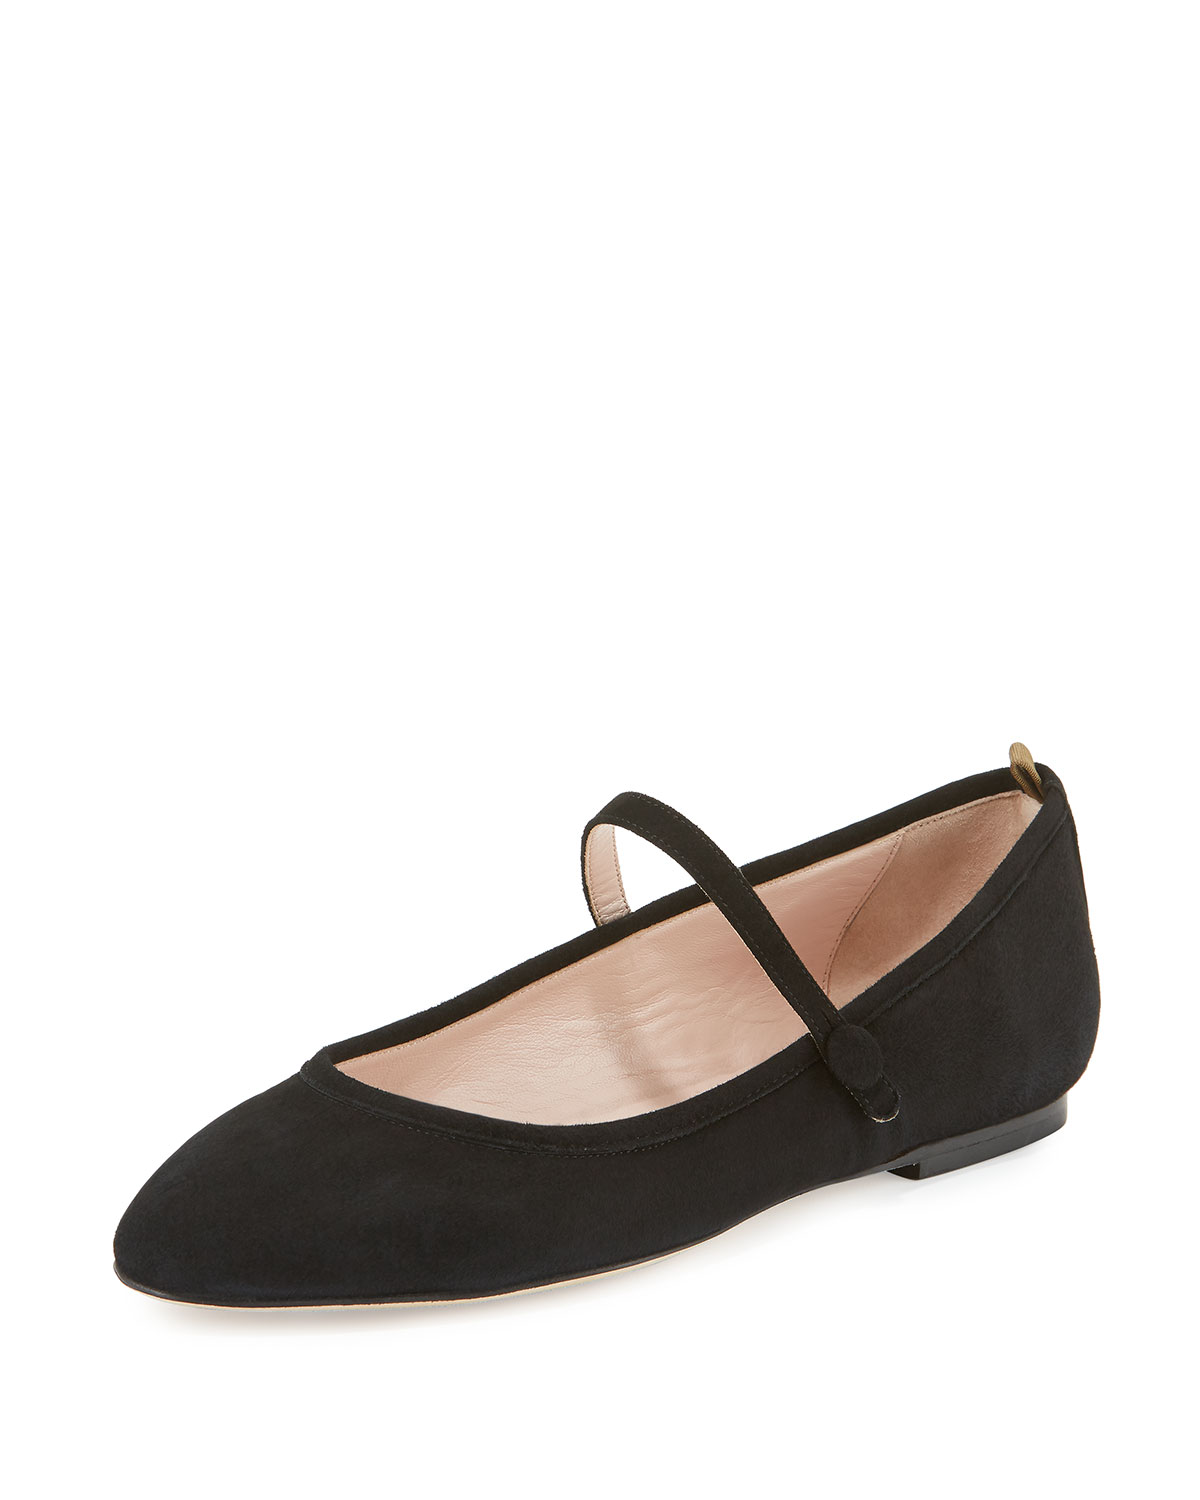 SJP by Sarah Jessica Parker Sashay Suede Mary Jane Flat